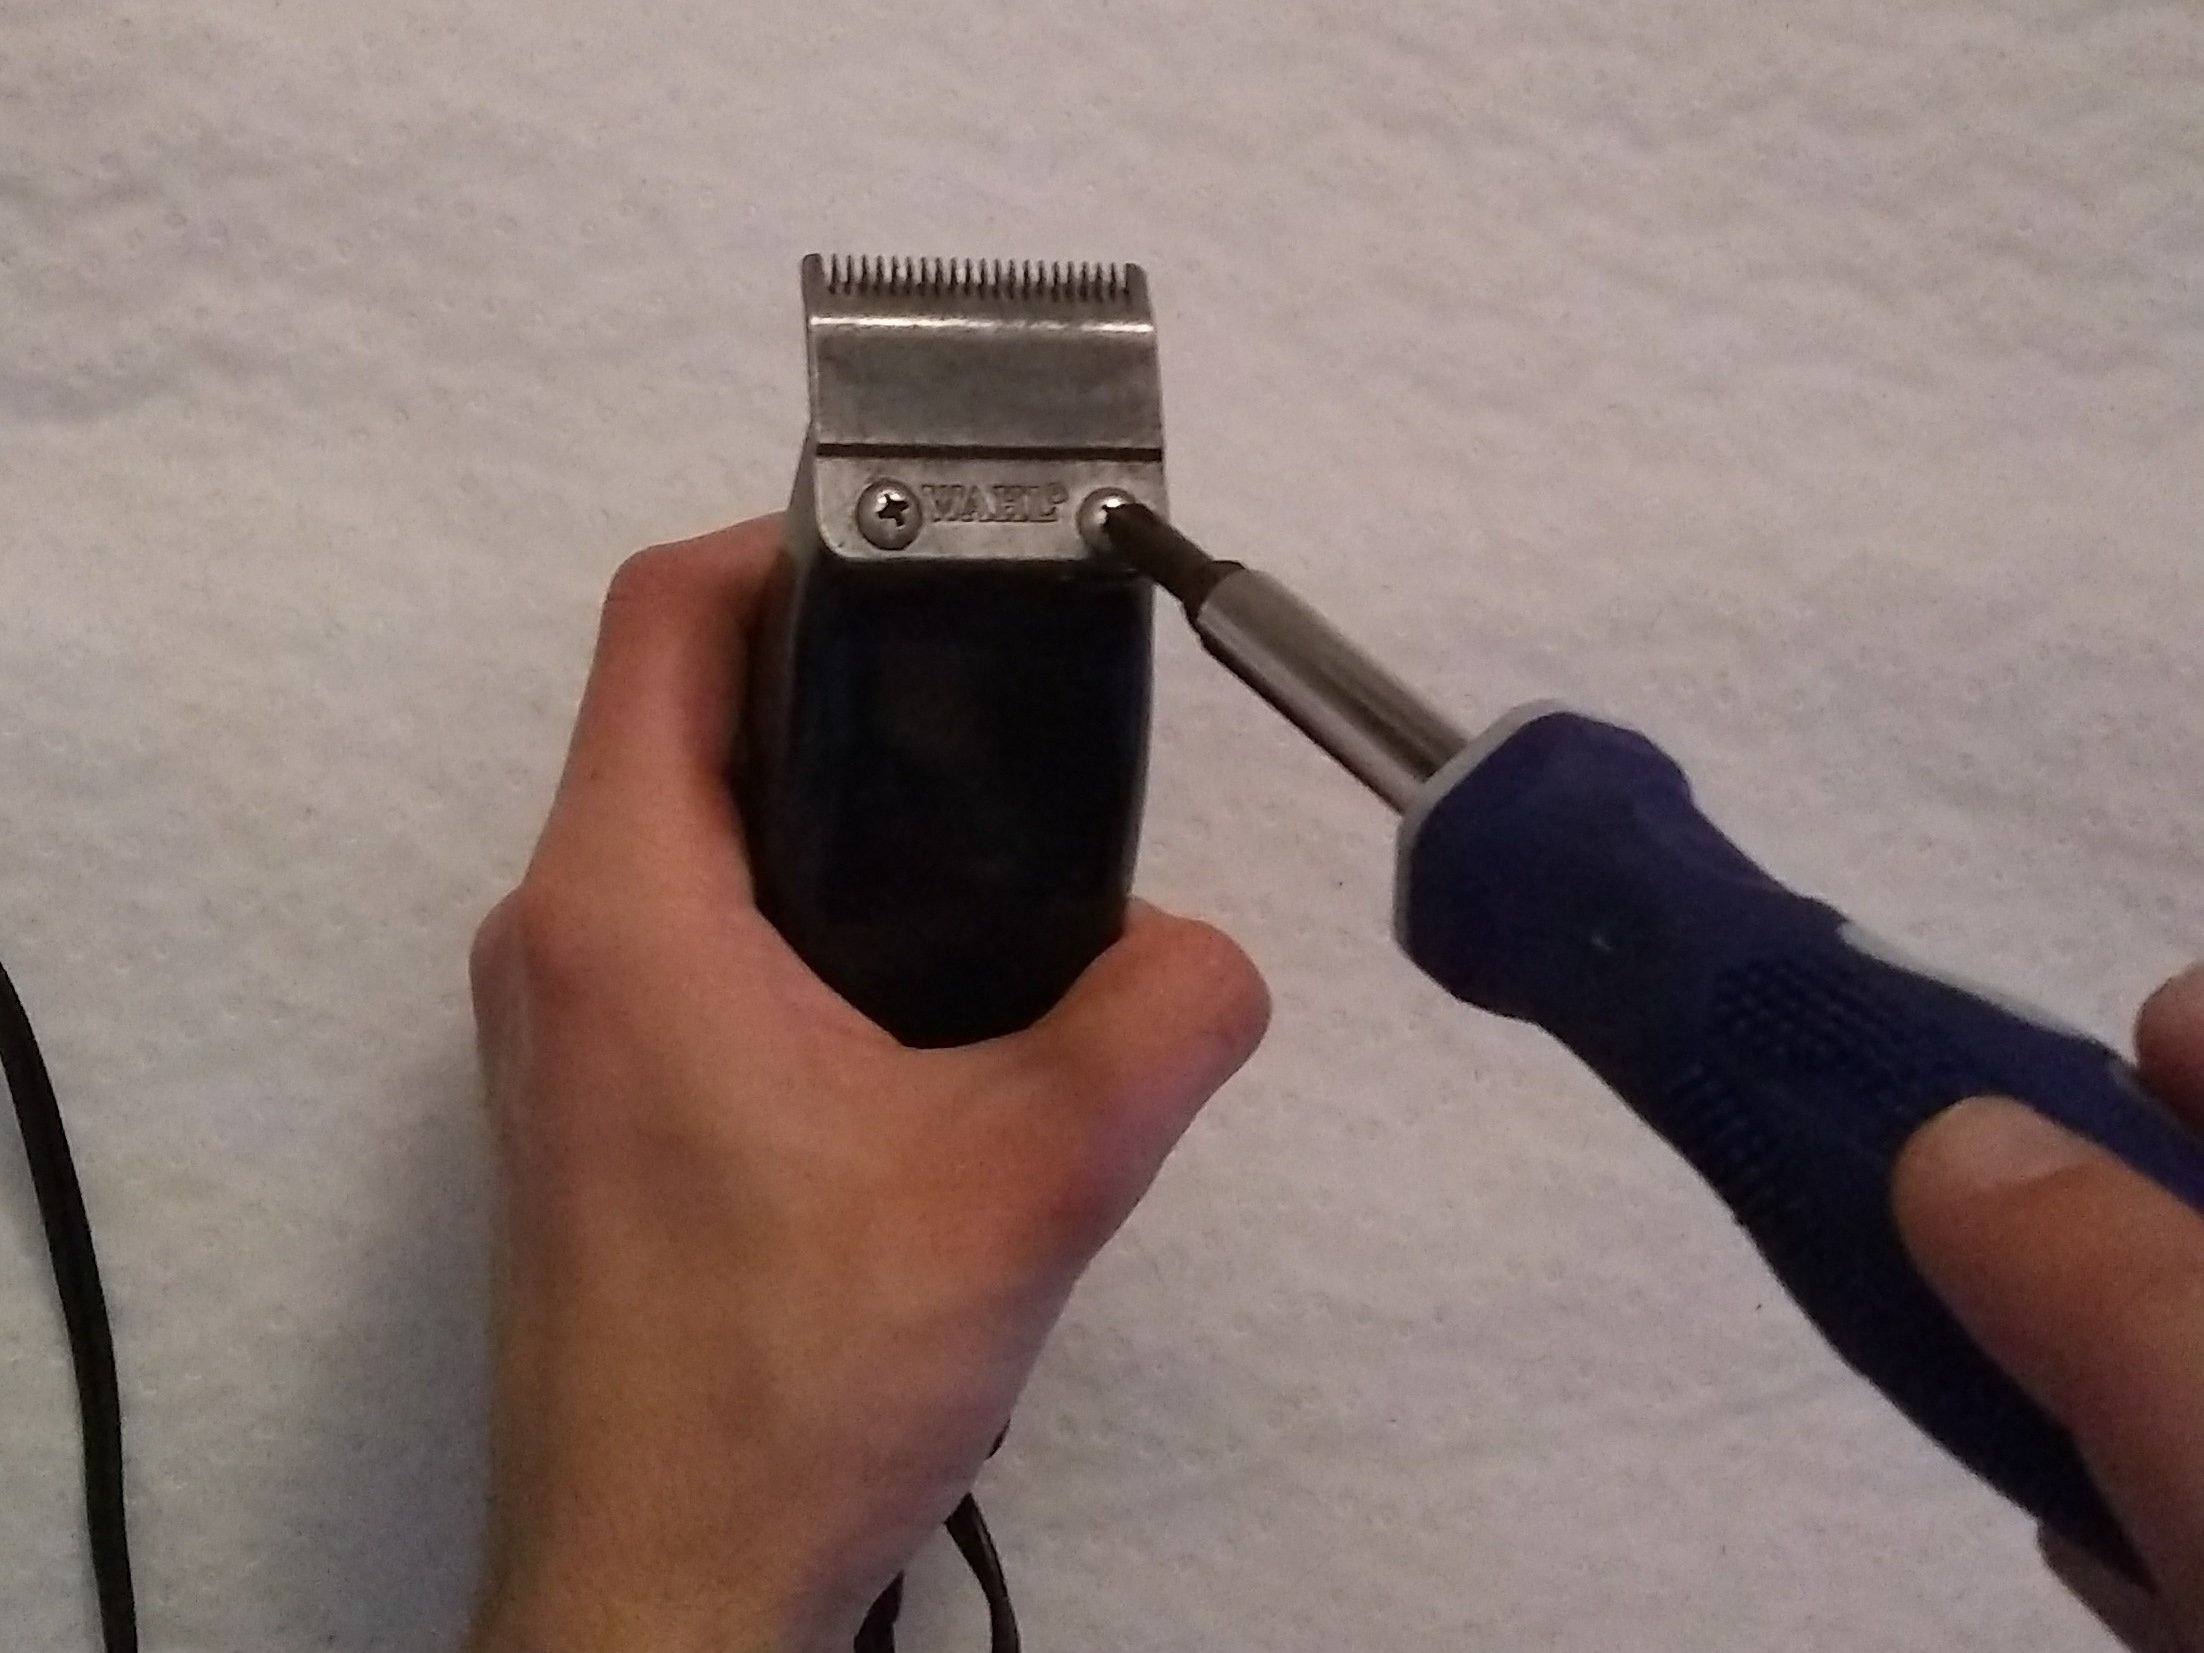 How To Clean And Sharpen Your Wahl Hair Clippers Ifixit Repair Guide